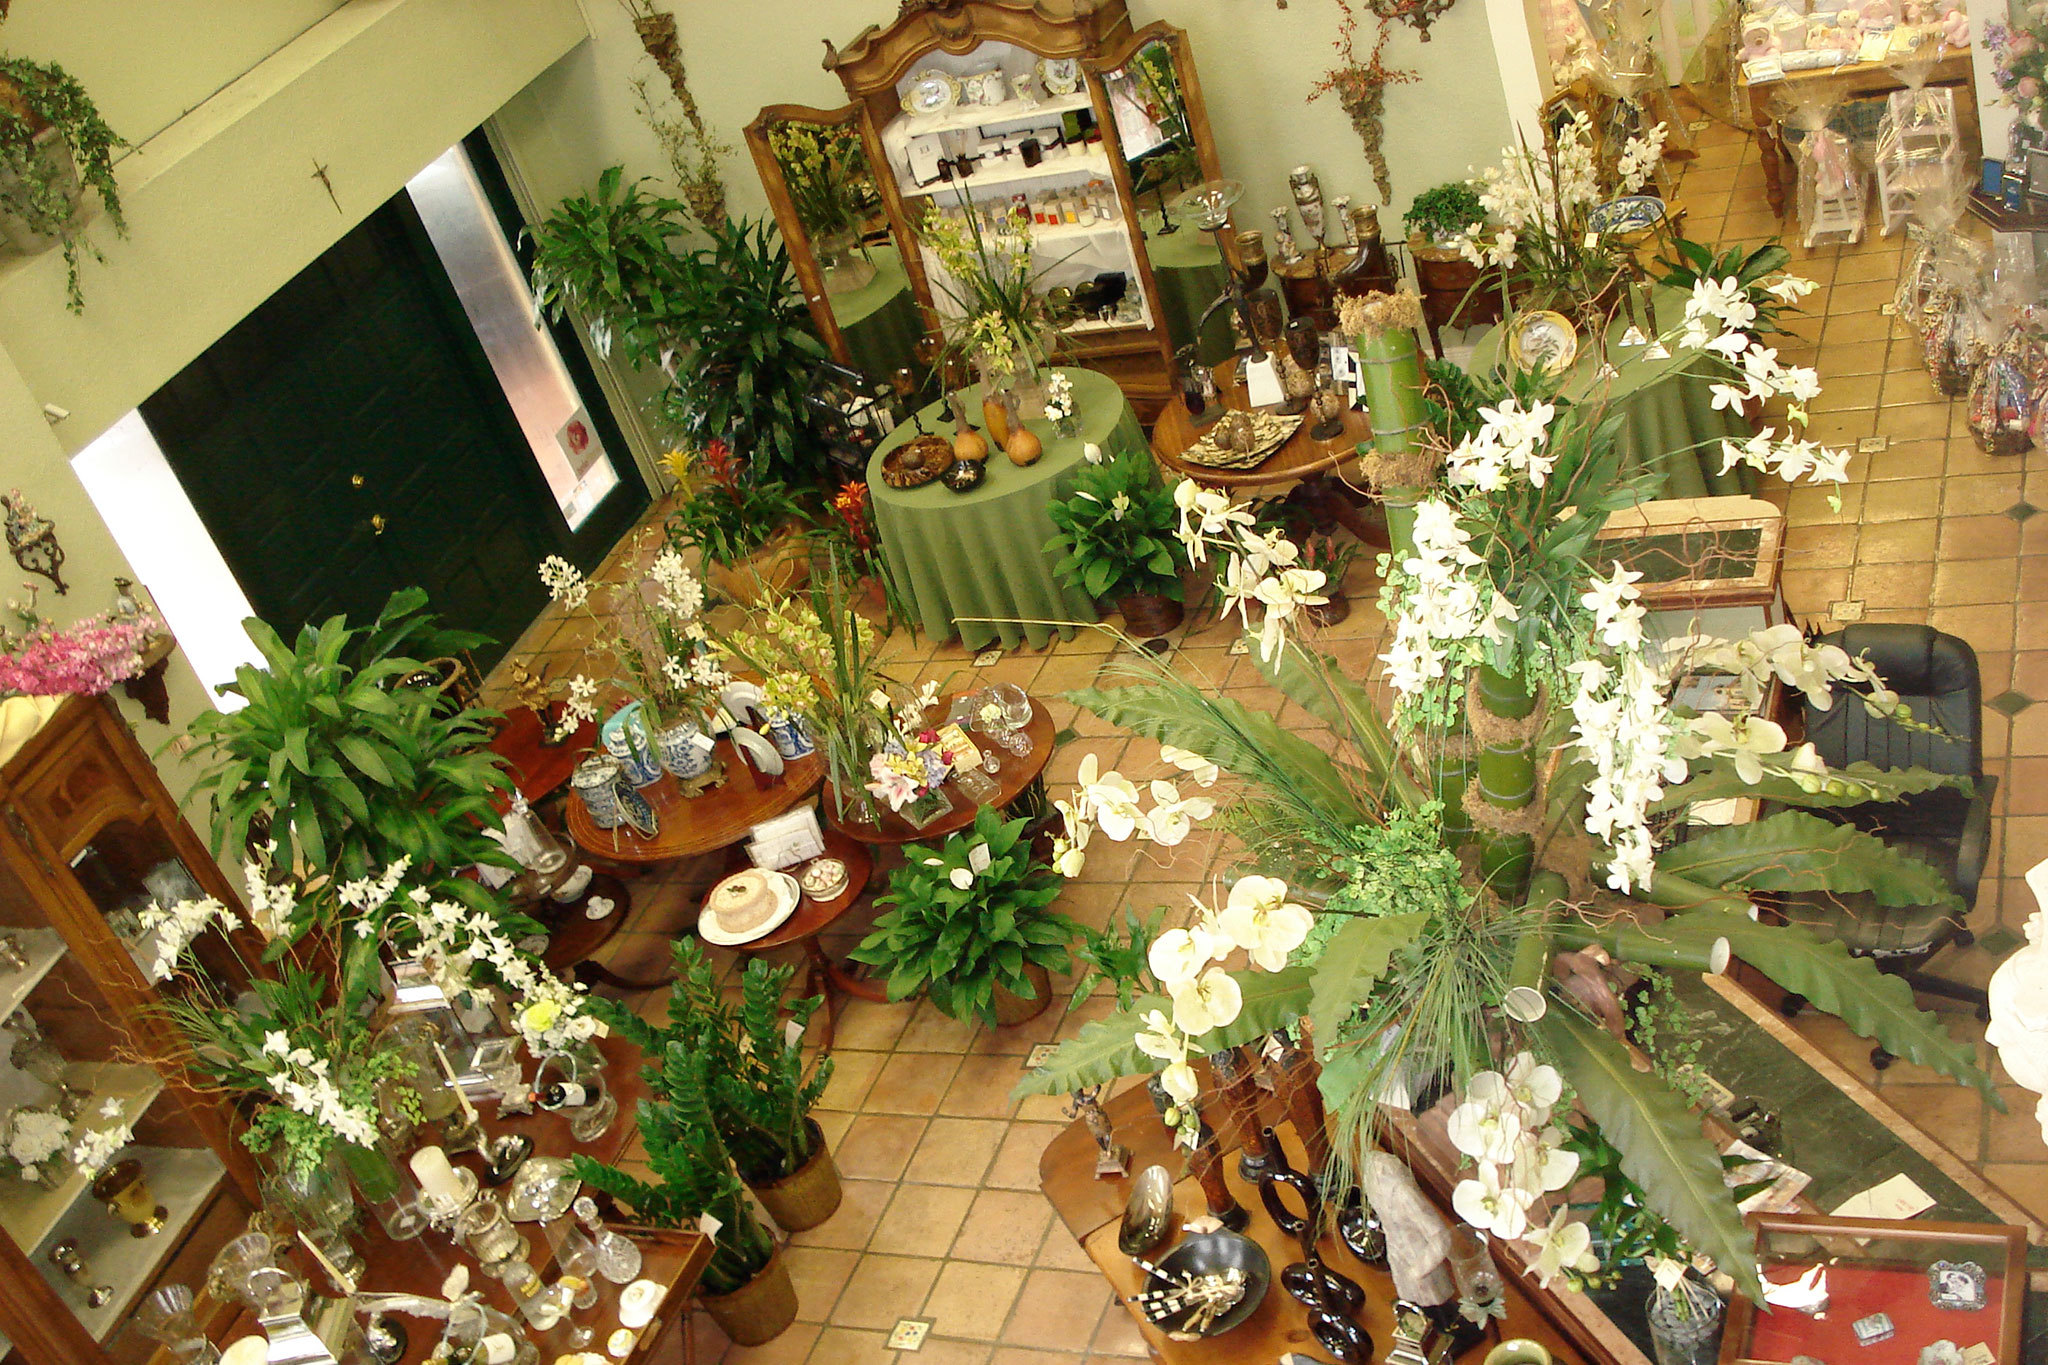 Best flower shops in Miami for floral arrangements and events